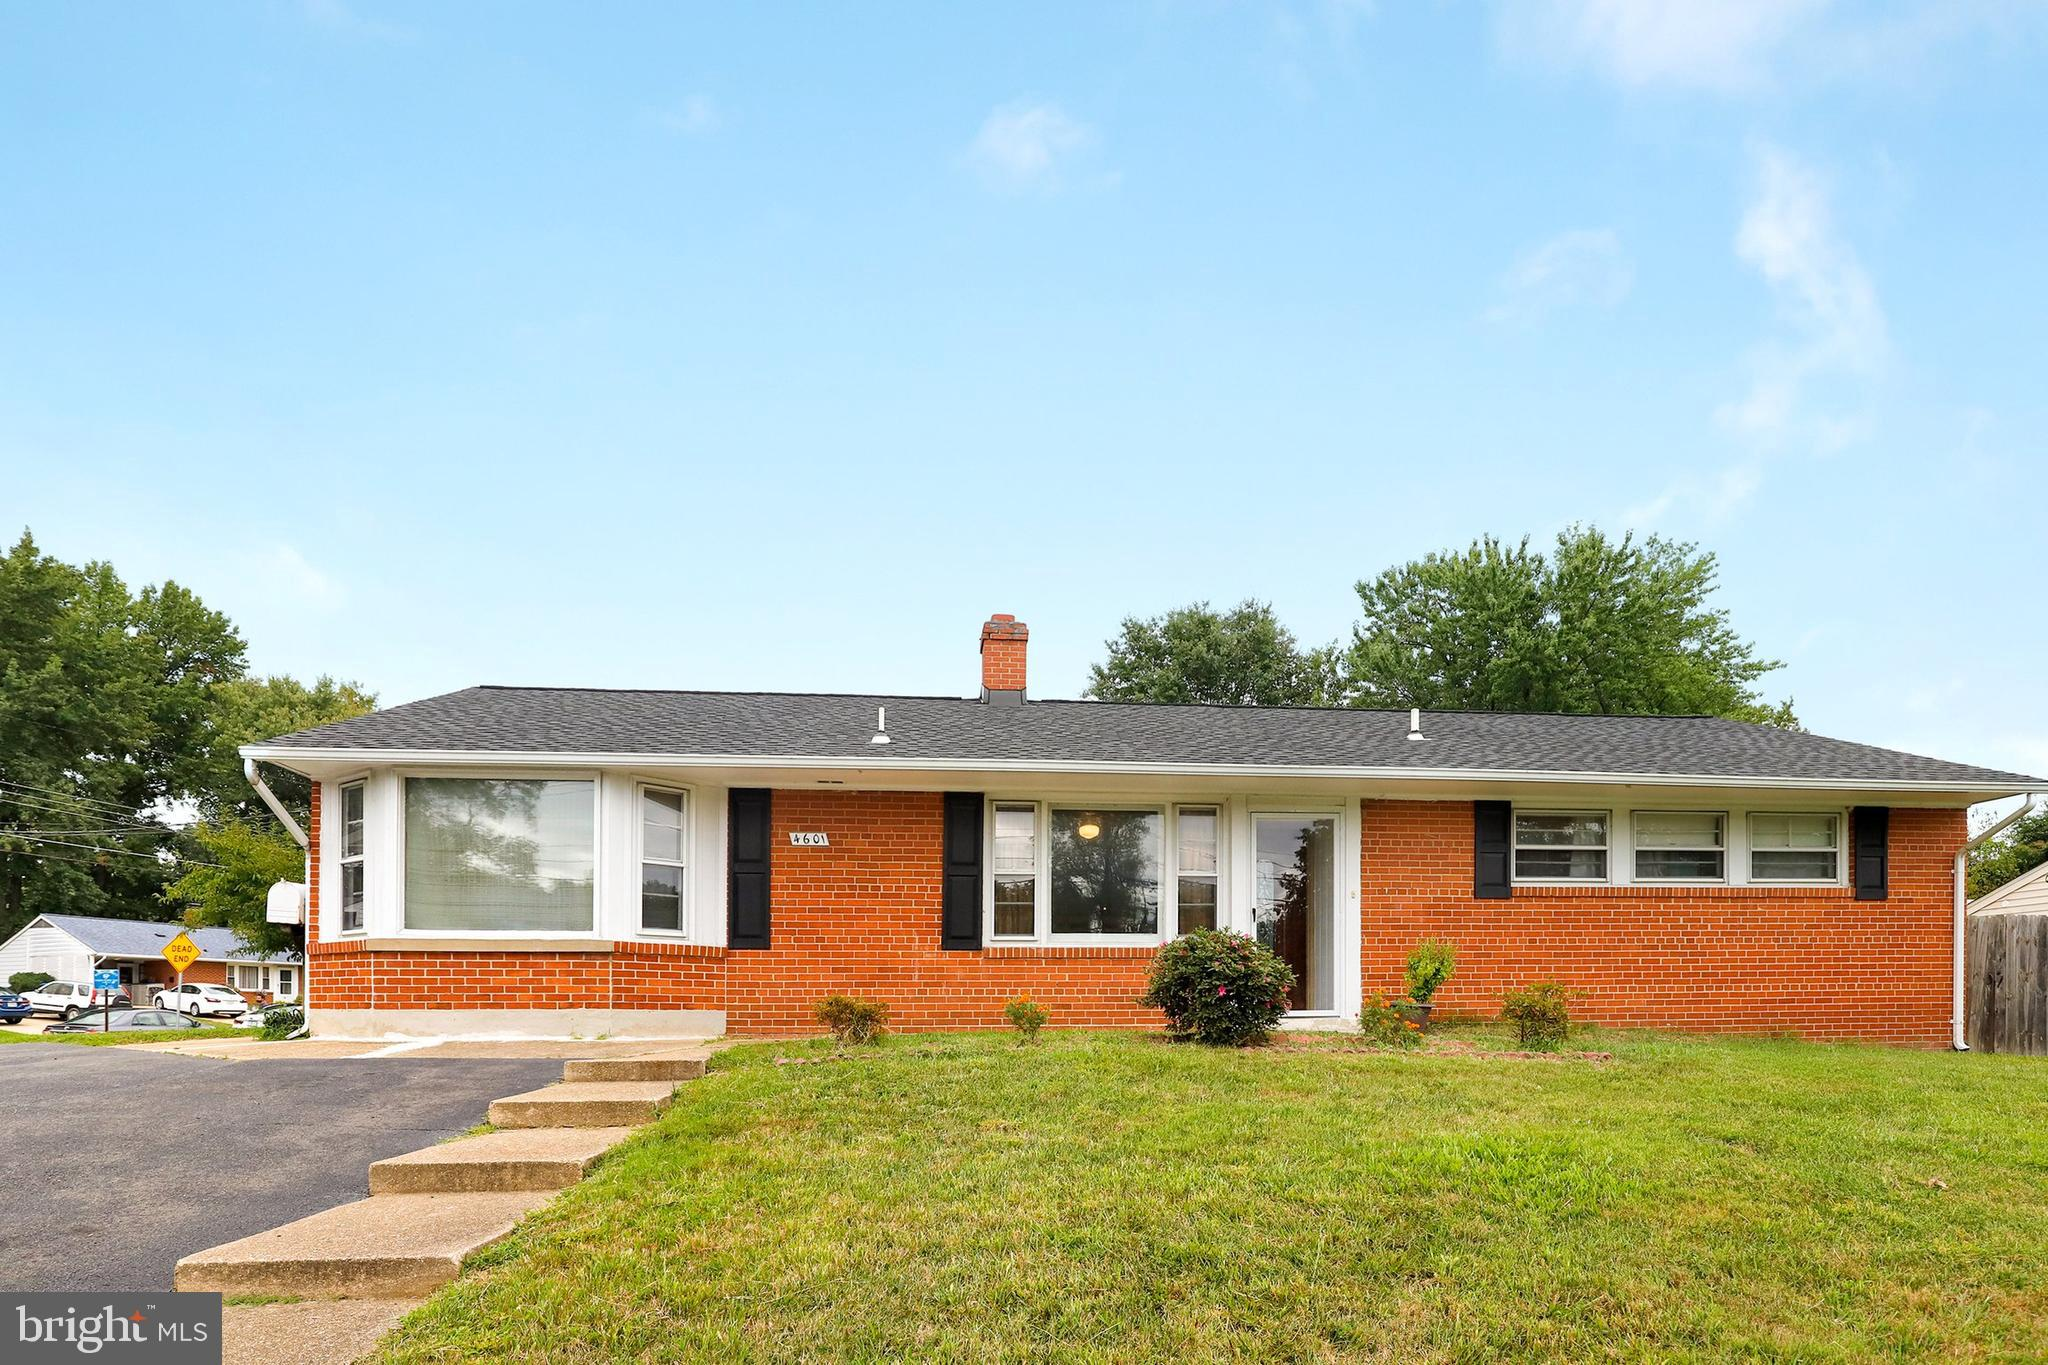 Back on market, buyer got cold feet, not a home inspection issue. Value priced inside the beltway Annandale location close to 395/495, shopping, and restaurants. Sited on a level corner lot, fully fenced with fruit bearing trees.  New roof 2018. Updates in the last 5 years include  kitchen with stainless appliances,granite, glass tile back splash, GAS COOKING, bath, and  laminate flooring in main living area. Expansive living room/dining room space with wood burning fireplace and and brick surround. Plenty of parking in the circular driveway and on street.